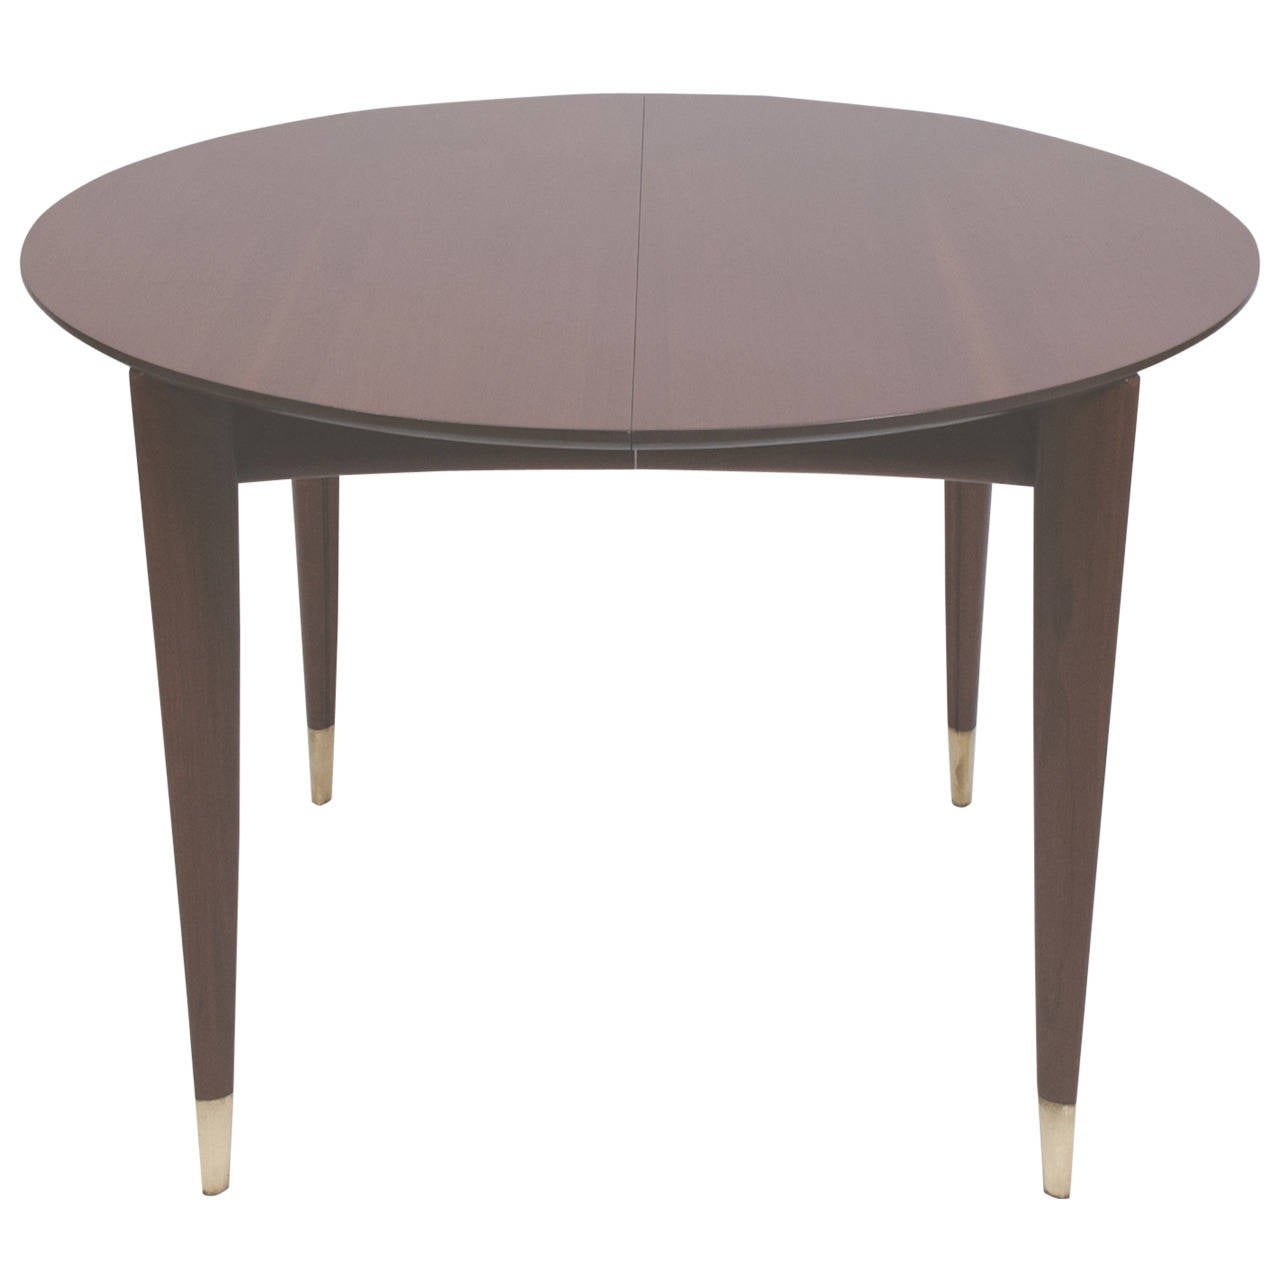 Dining table by gio ponti for m singer and son for sale for M s dining room tables